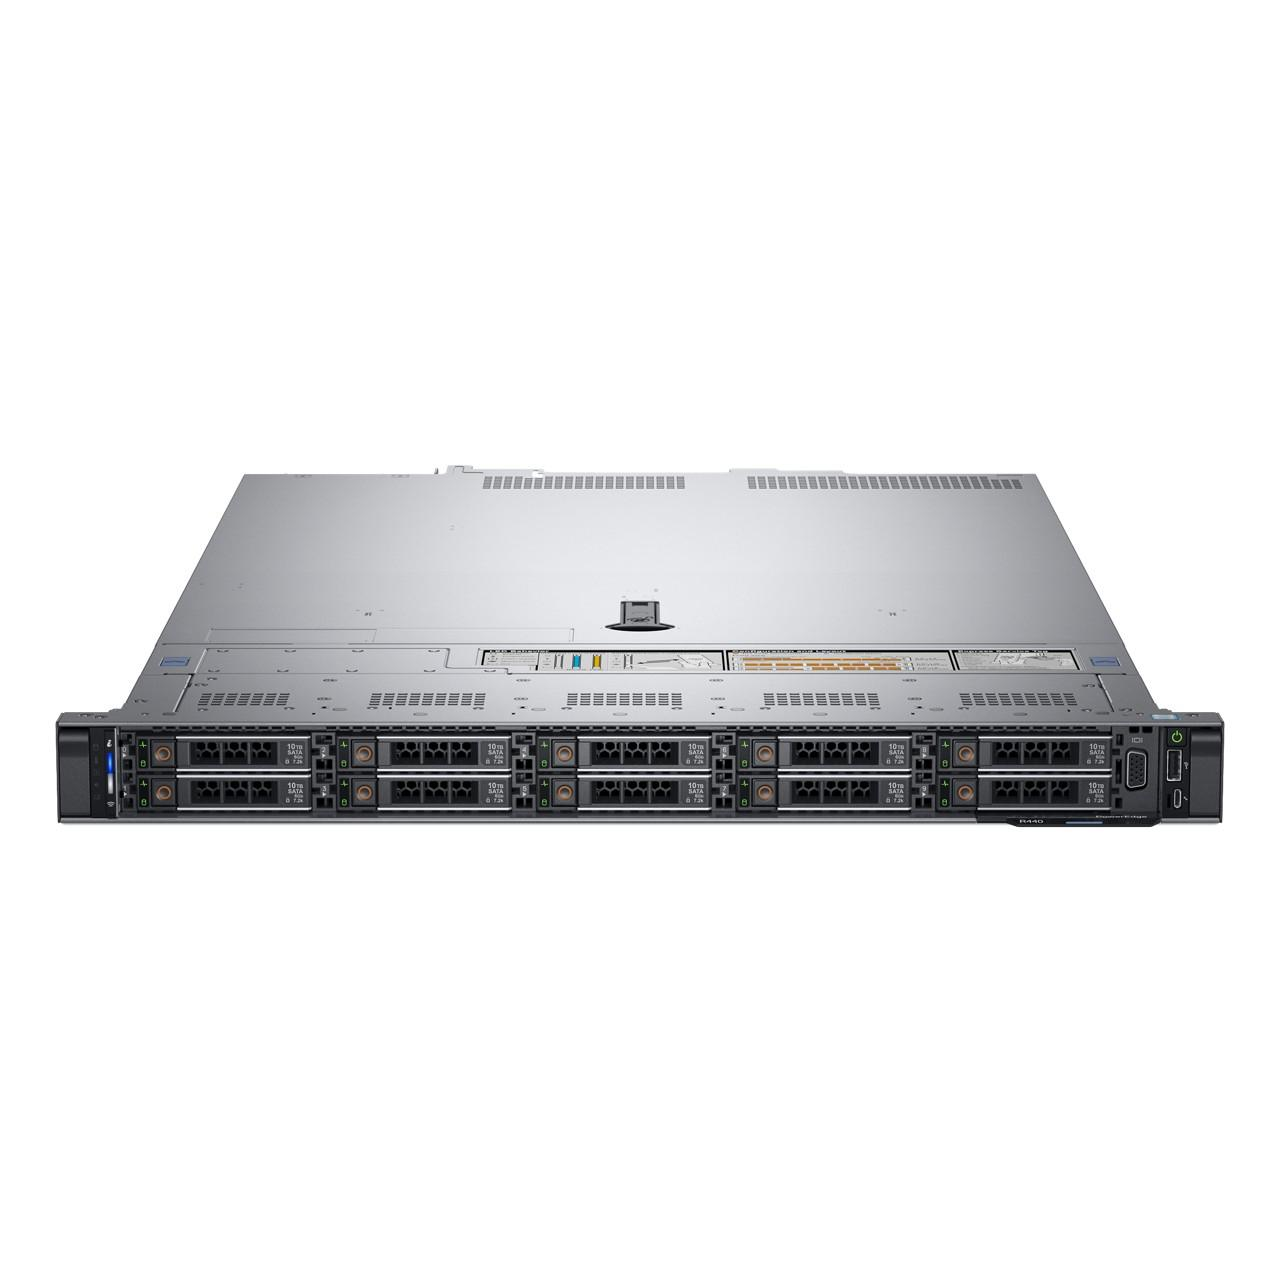 Tot 400,- bundelkorting op DELL PowerEdge servers icm MS Windows Server 2019